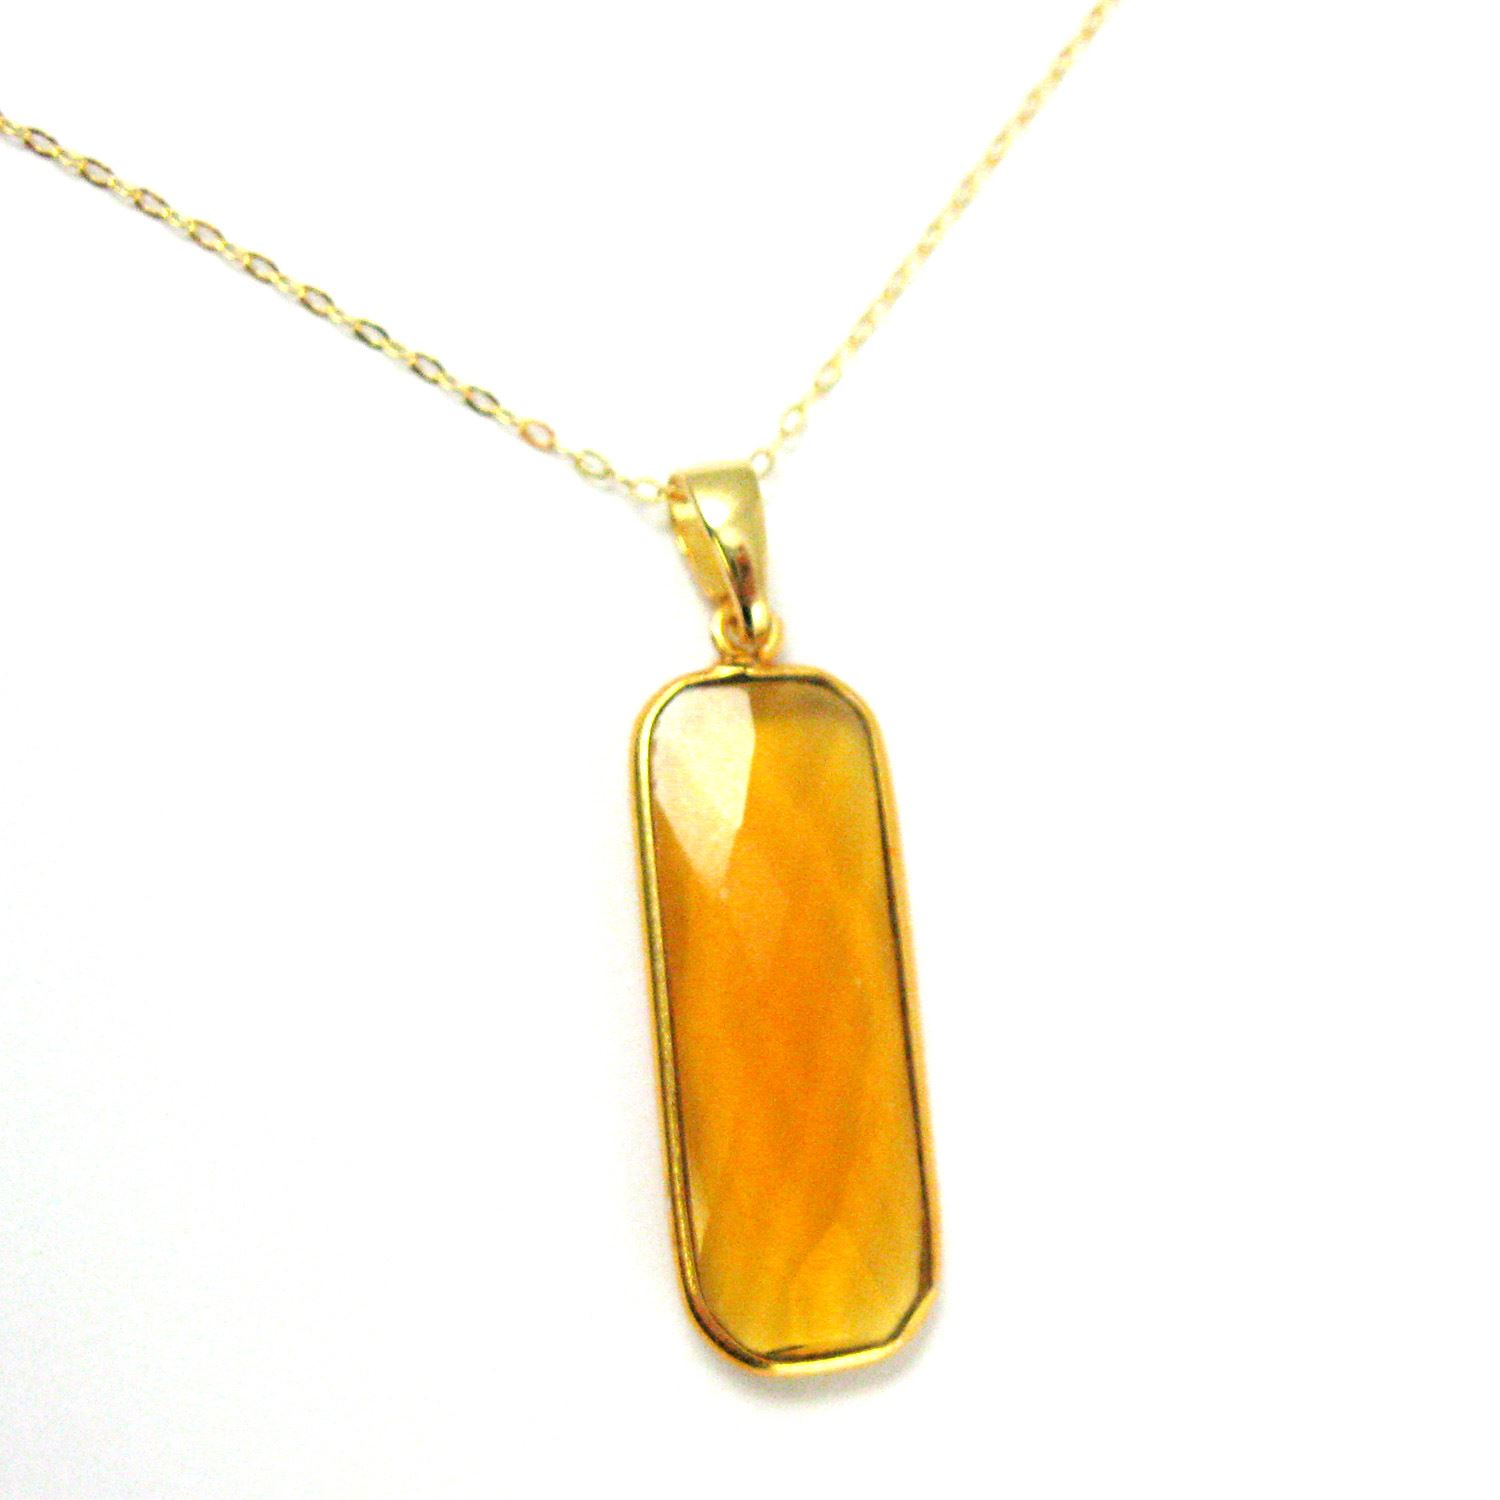 Bezel Gemstone Pendant with Bail - Gold plated Sterling Silver Rectangle Gem Pendant - Ready for Necklace - 40mm - Citrine Quartz